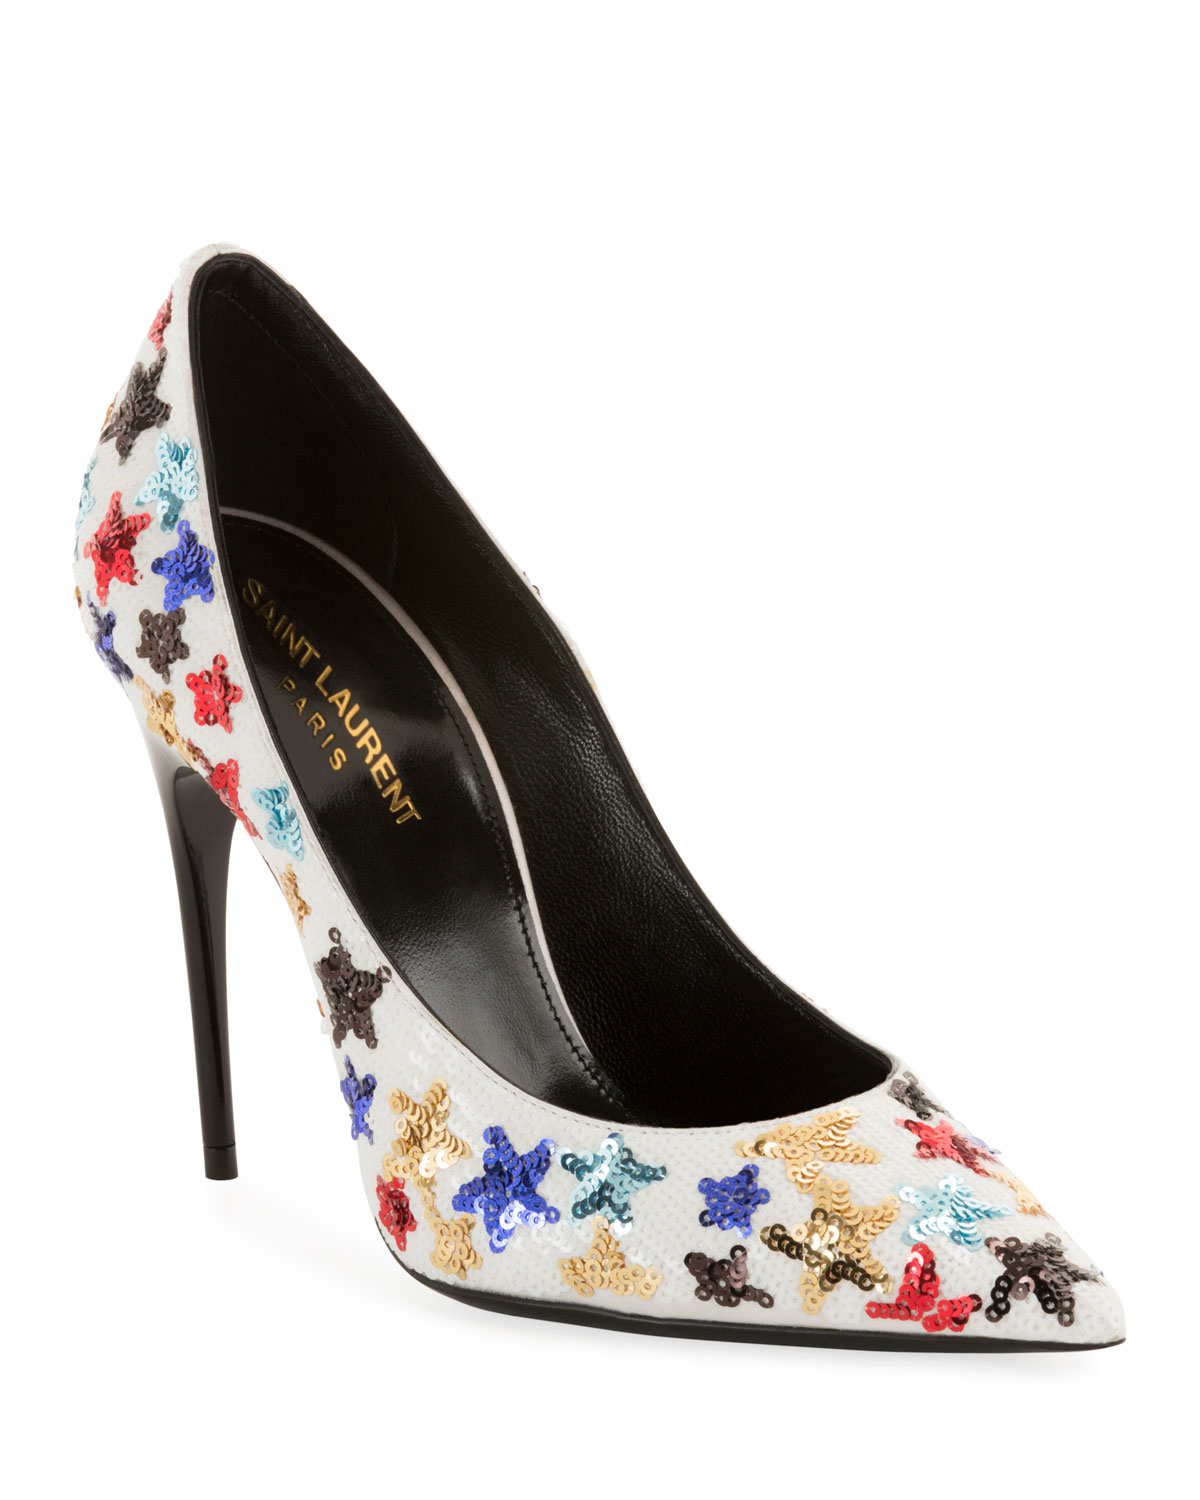 Palace Star Sequined High-Heel Pumps